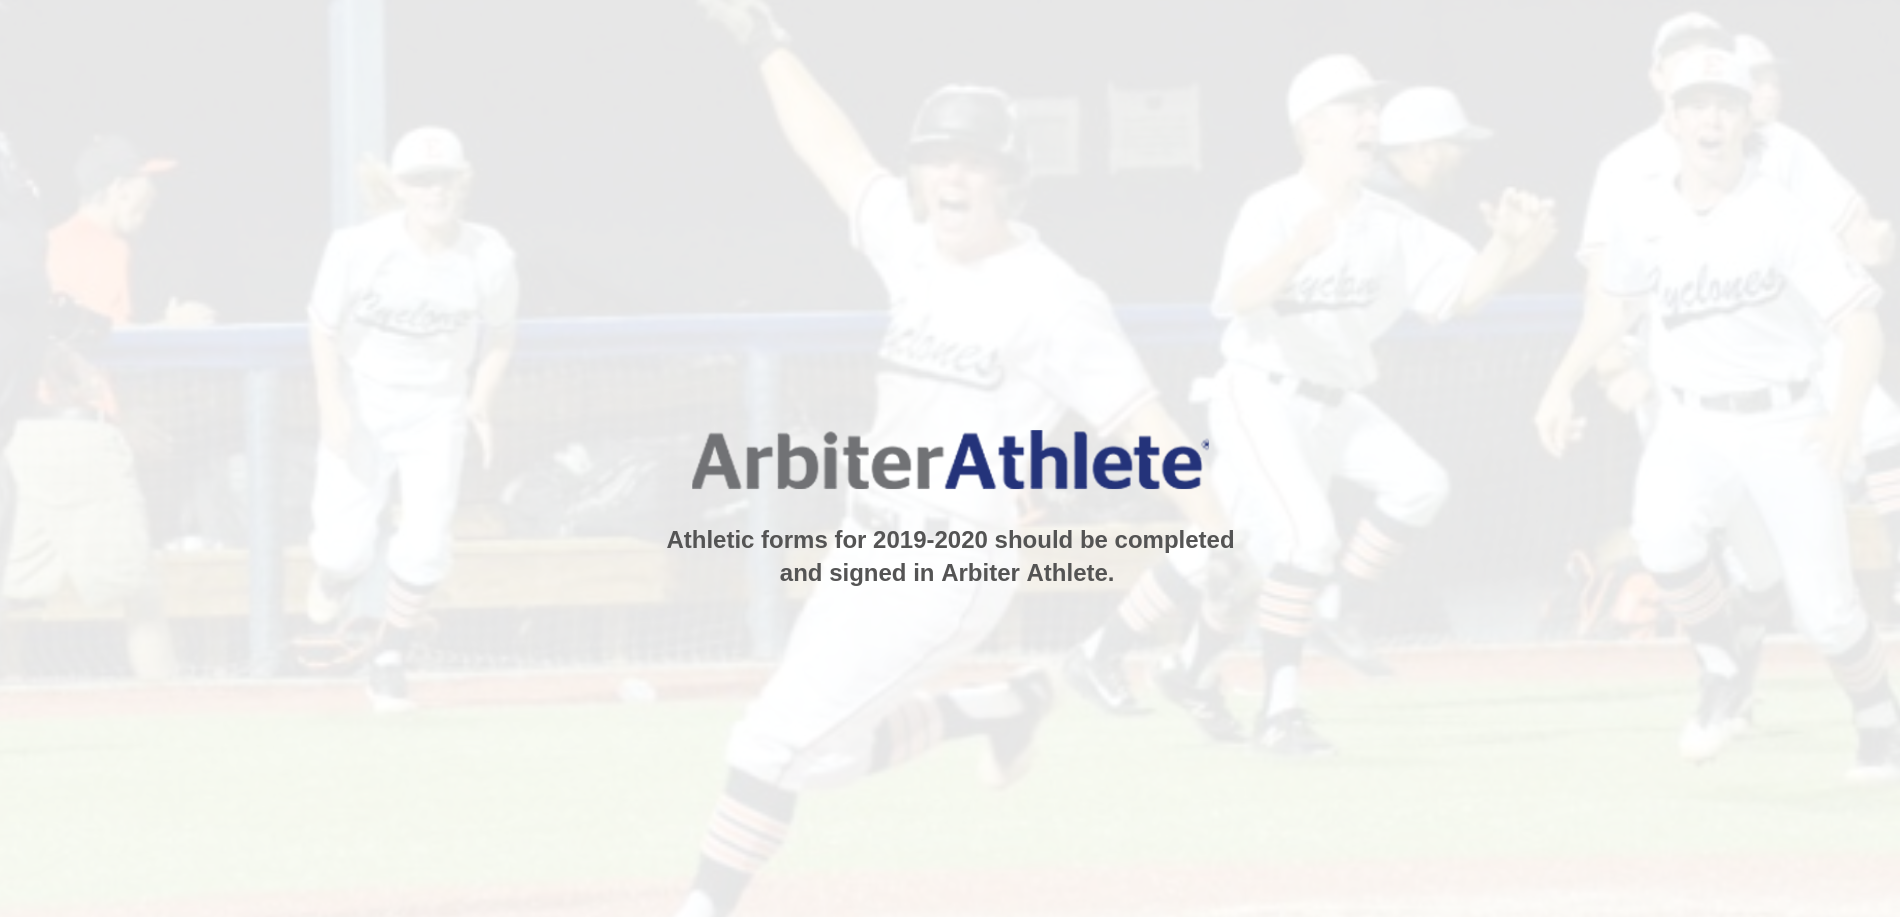 Arbiter Athlete instructions.